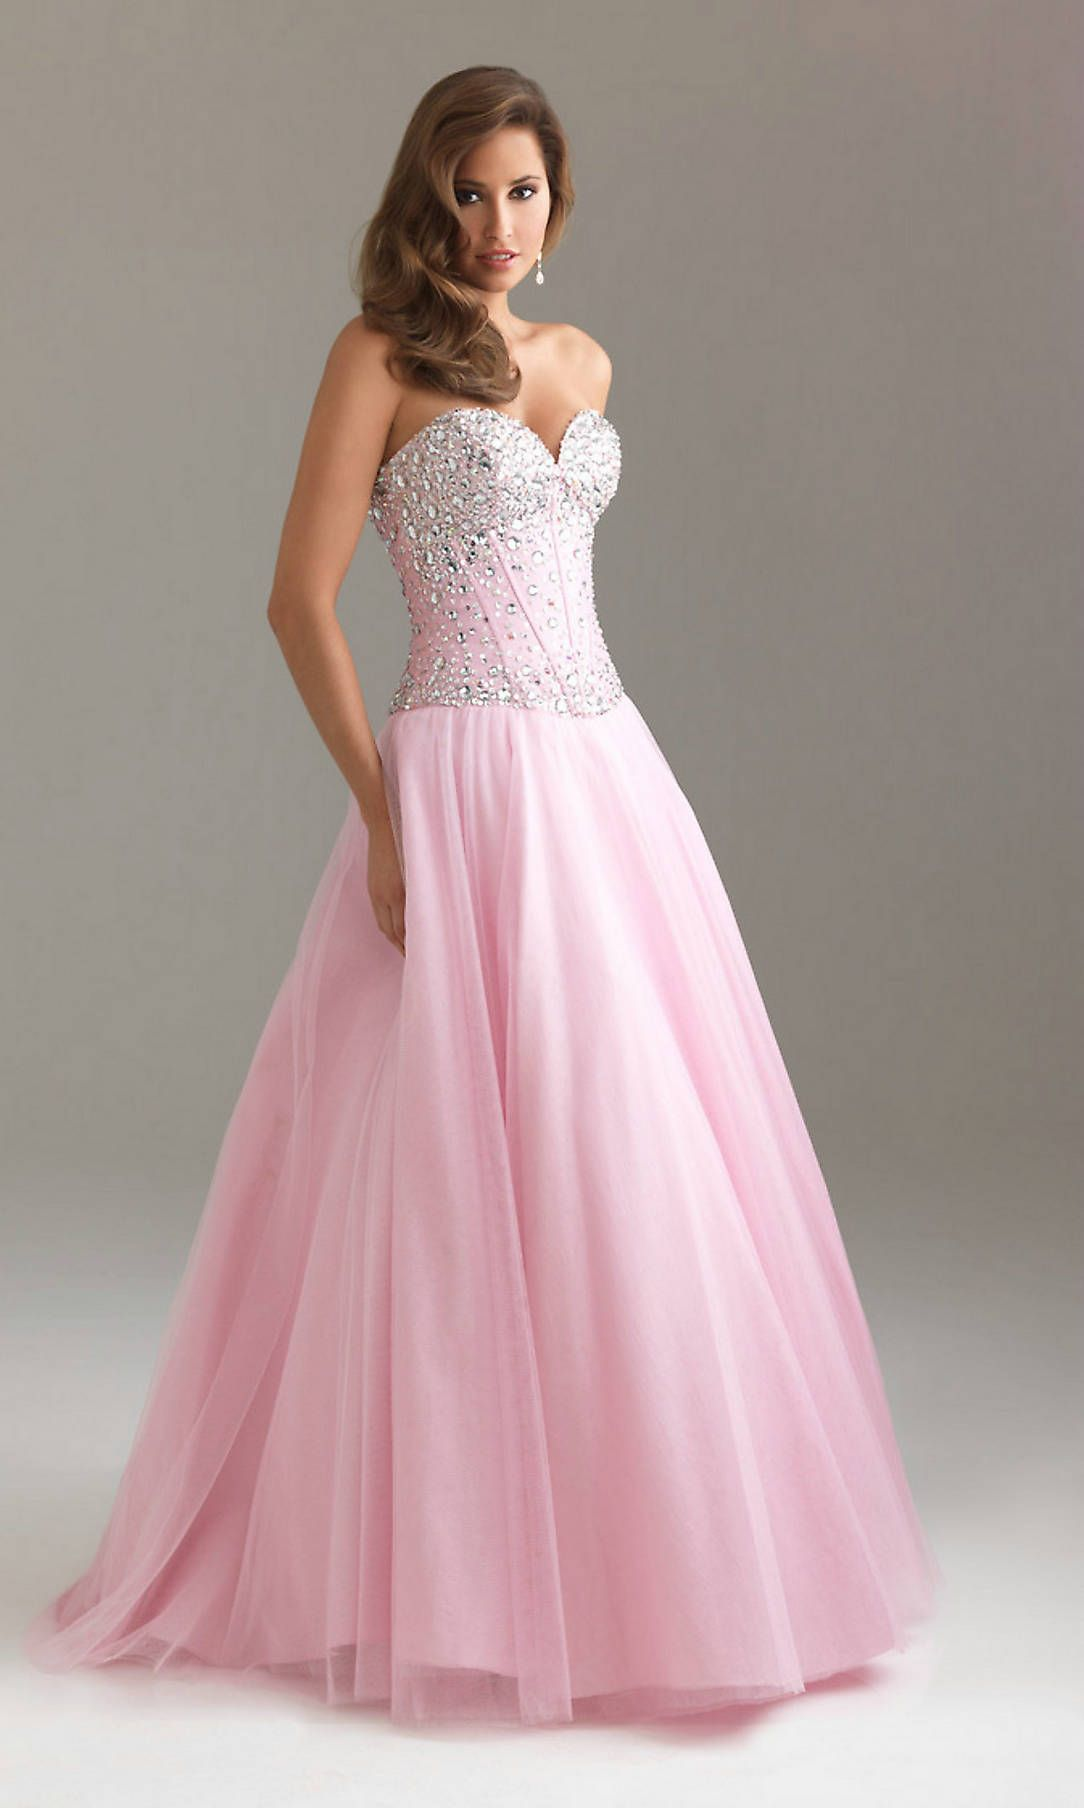 On-line stores always provide an excellent selection of prom ...